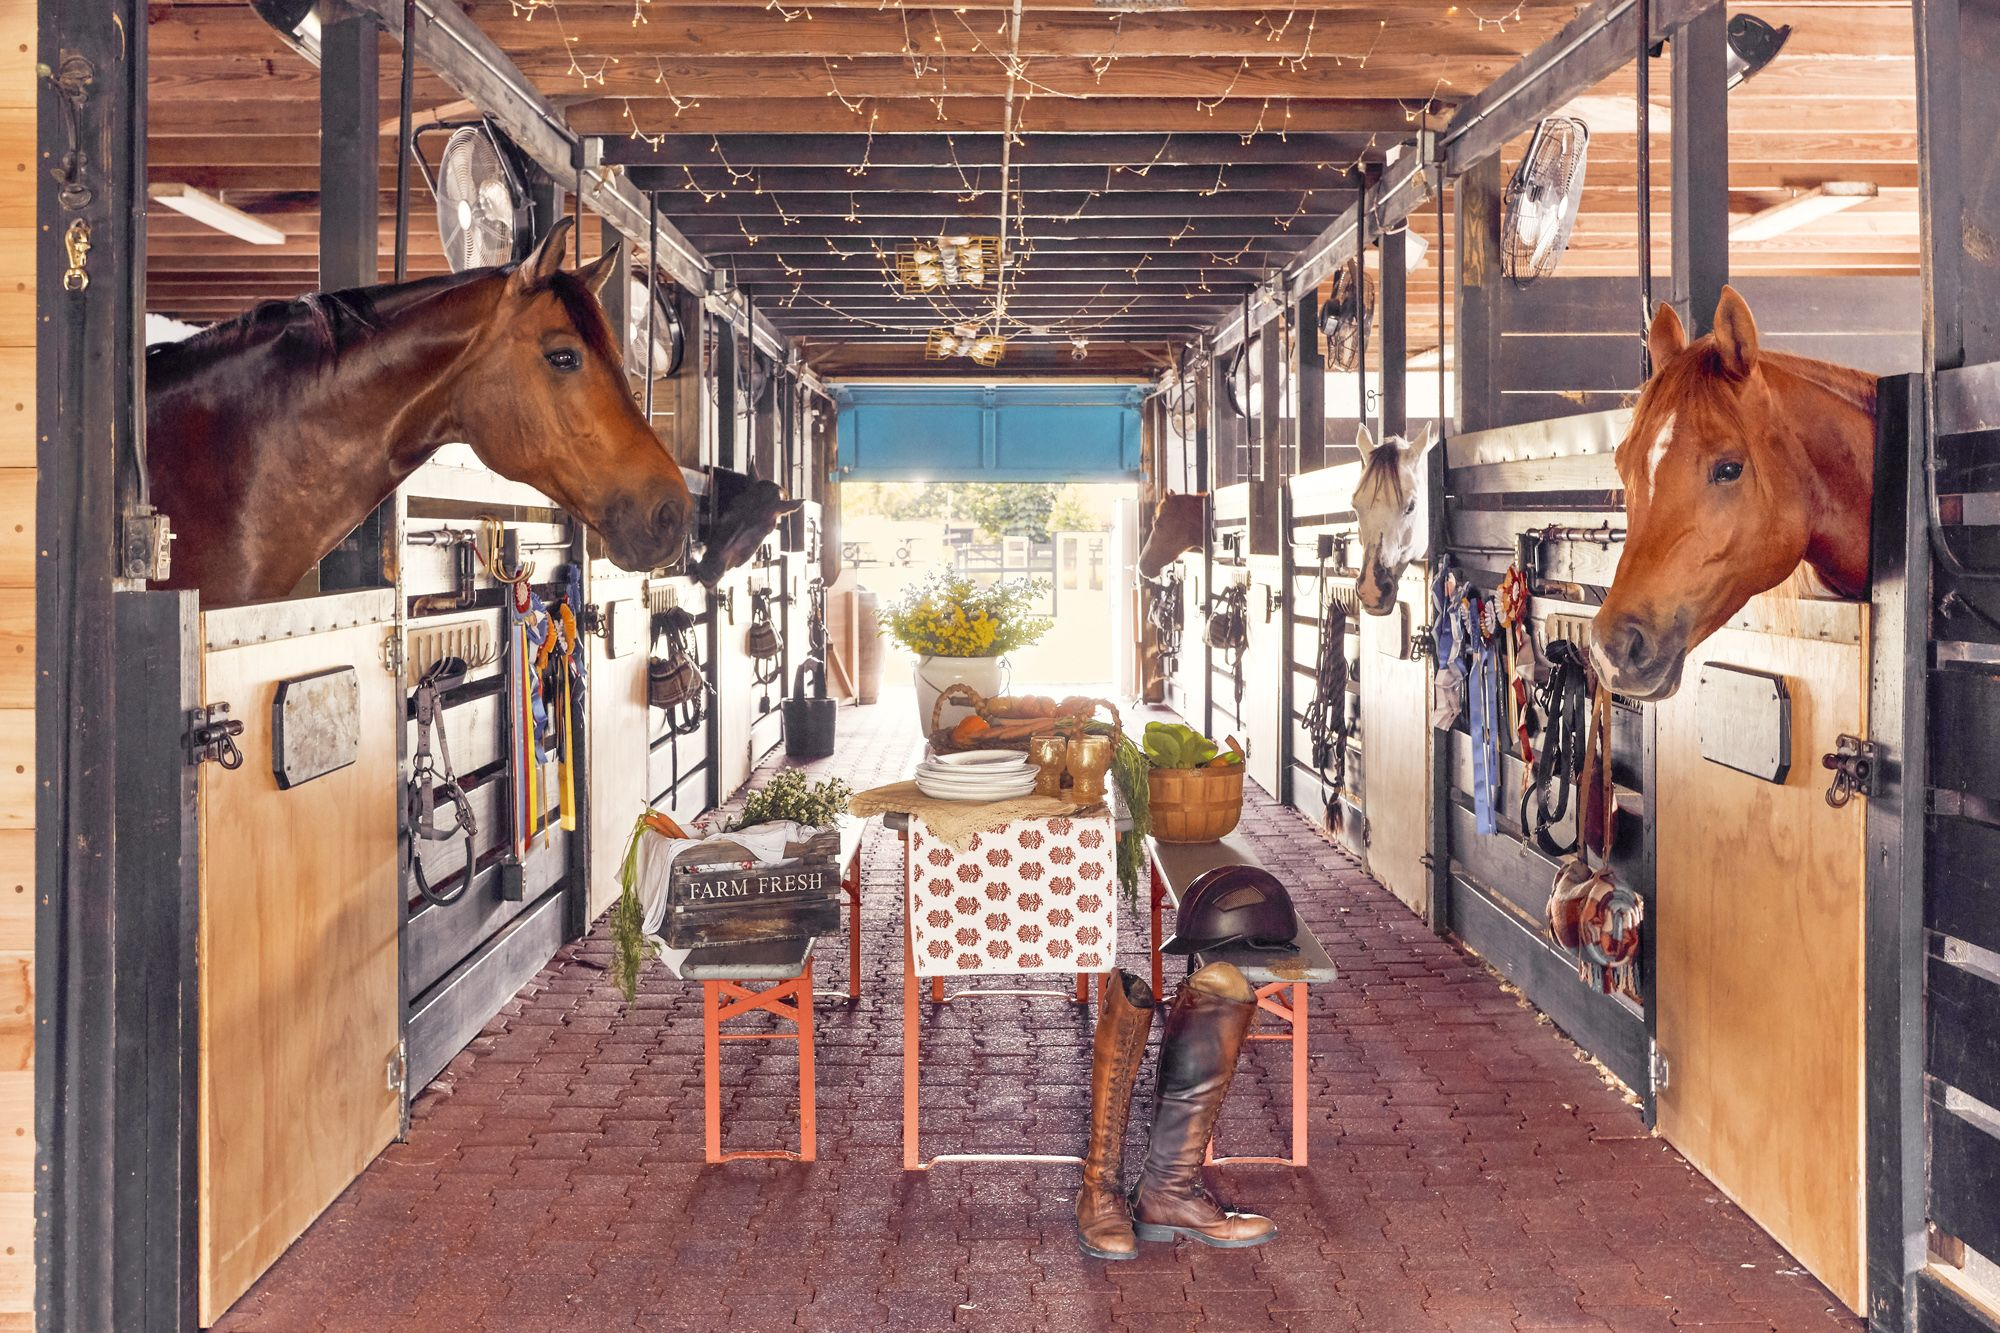 This Florida Horse Farm Offers Plenty Of Colorful Decorating Ideas